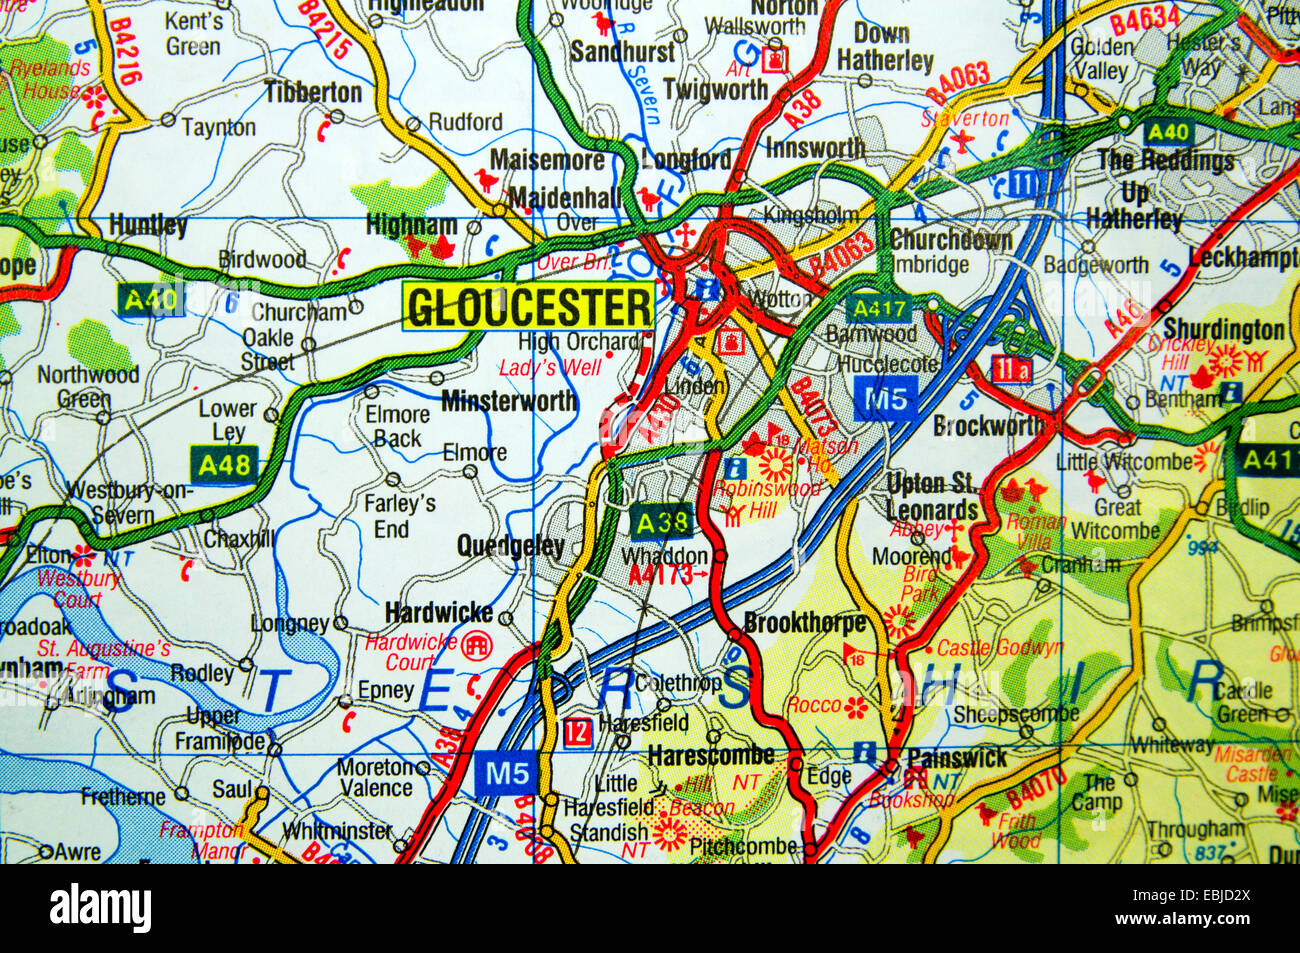 Road Map of Gloucester England Stock Photo 76008098 Alamy